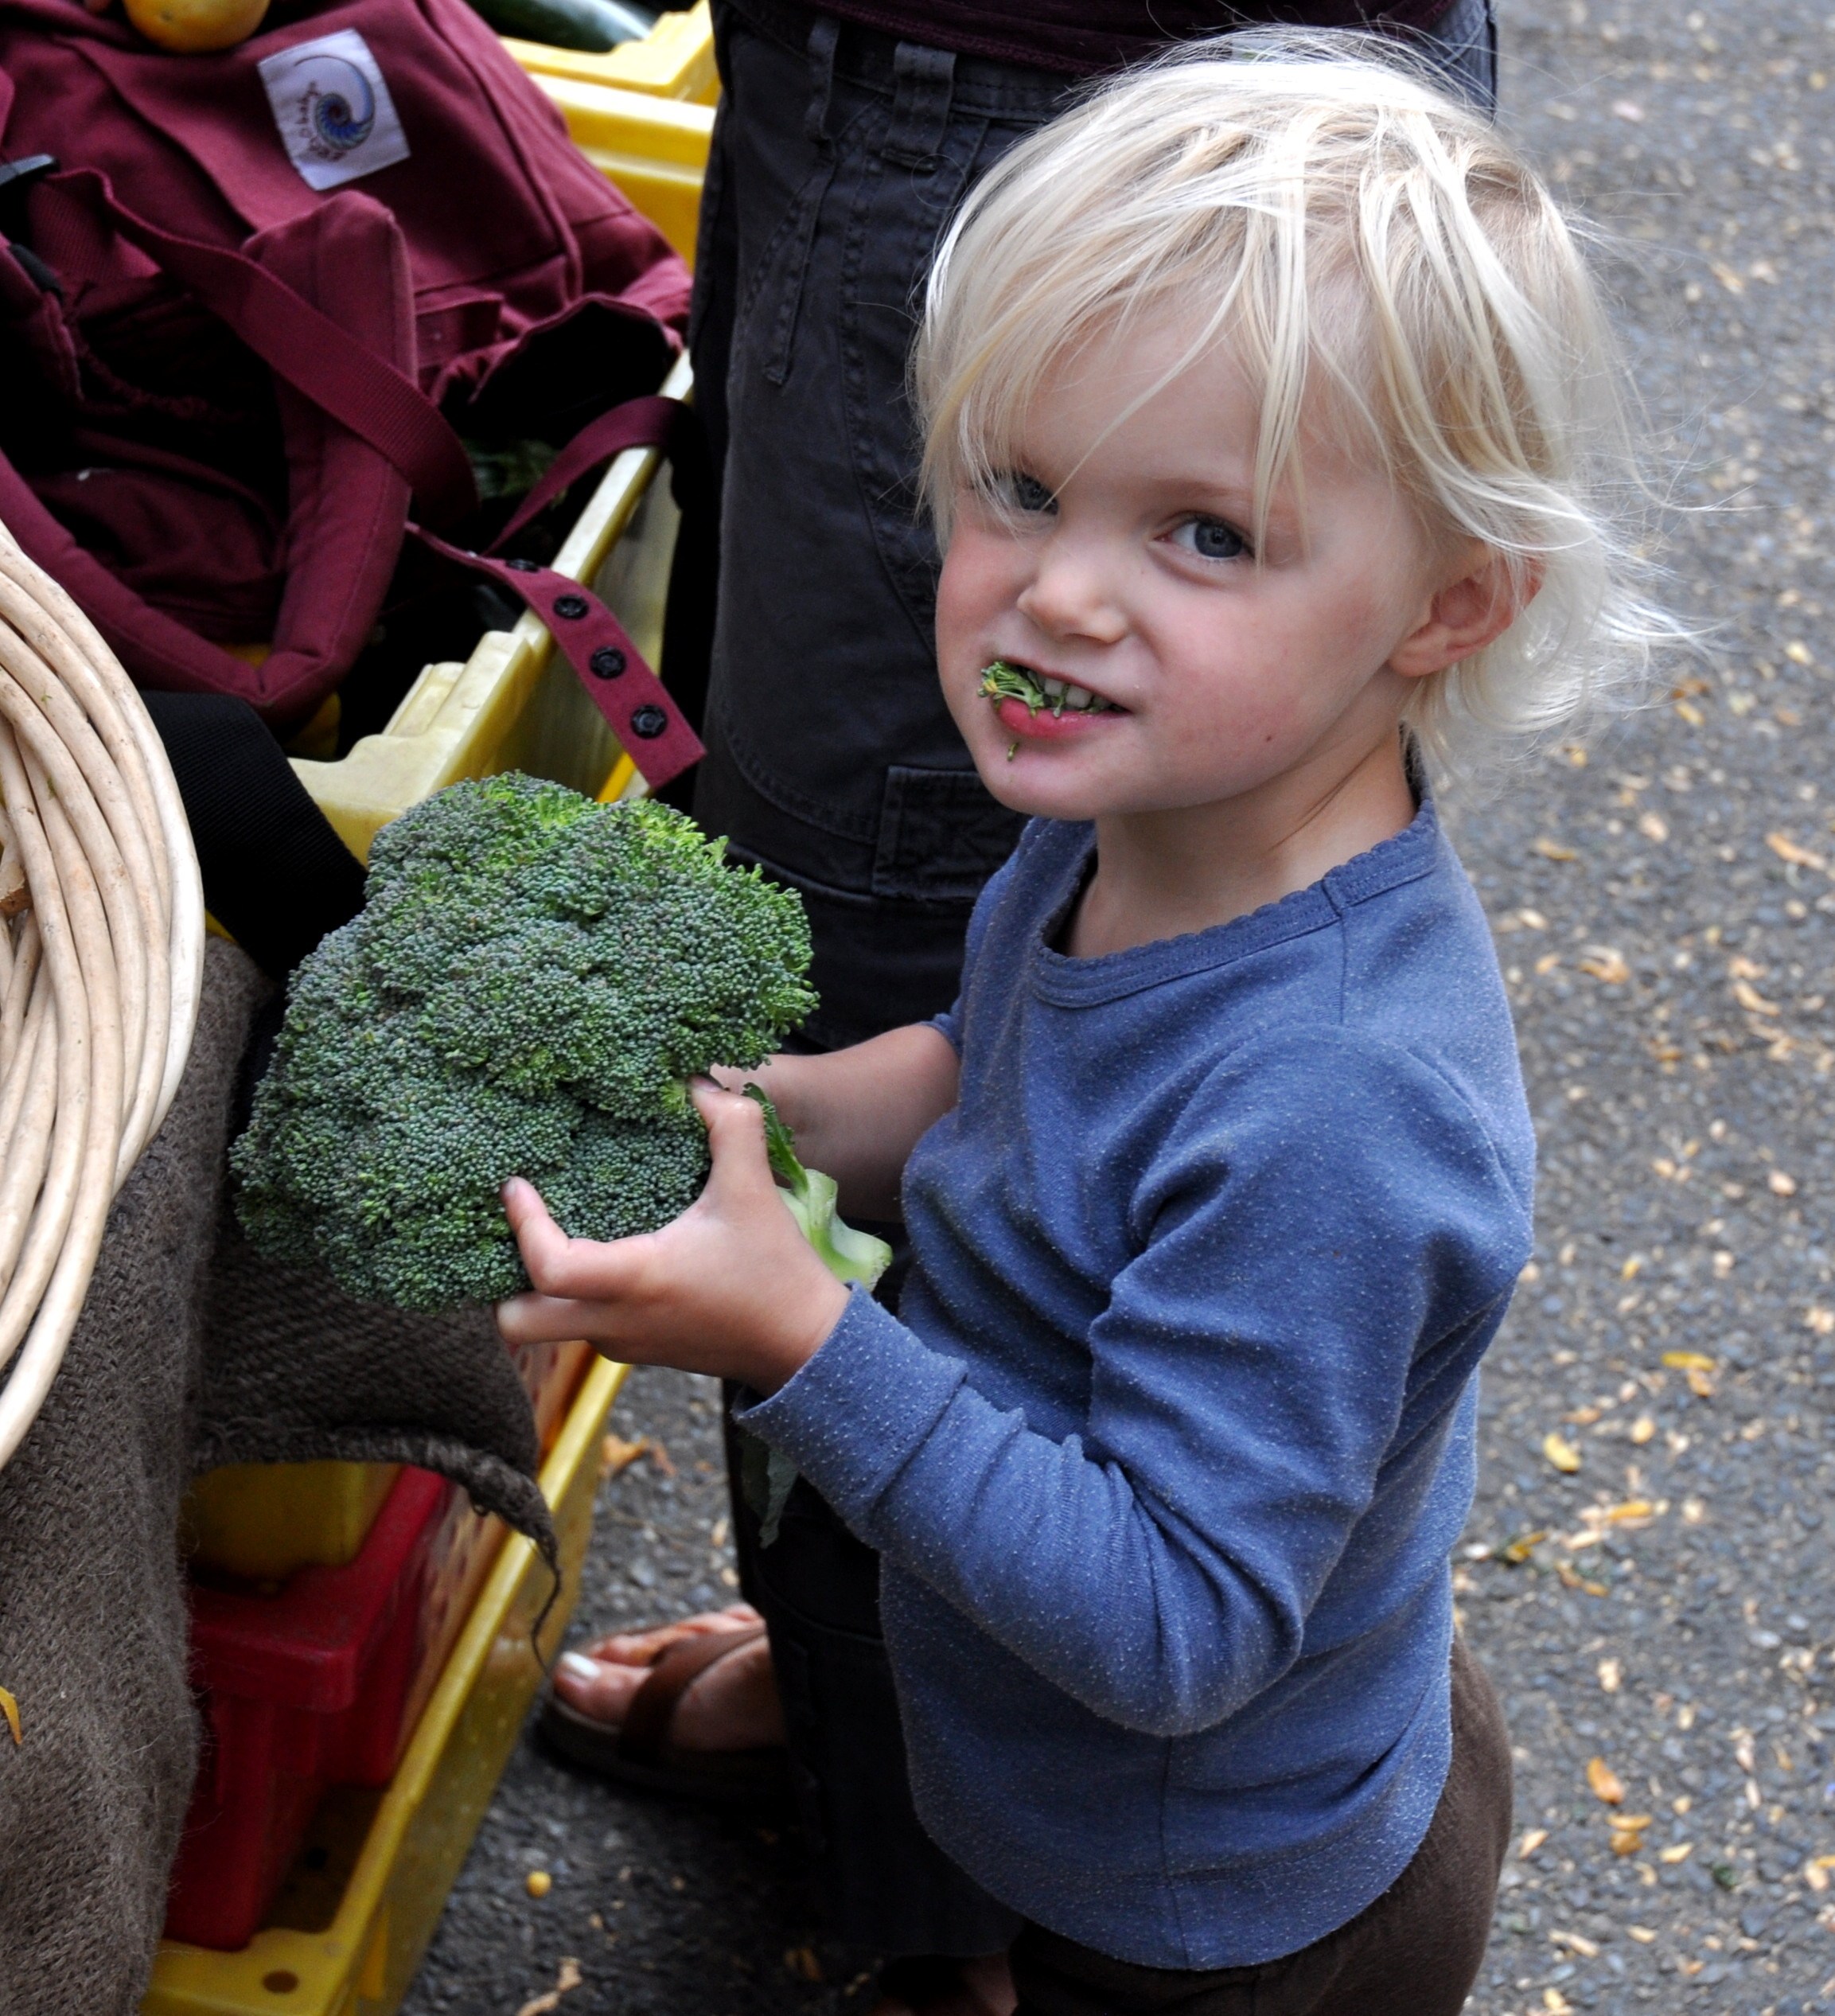 Little Marina loves her some Oxbow Farm broccoli! Photo copyright 2012 by Zachary D. Lyons.